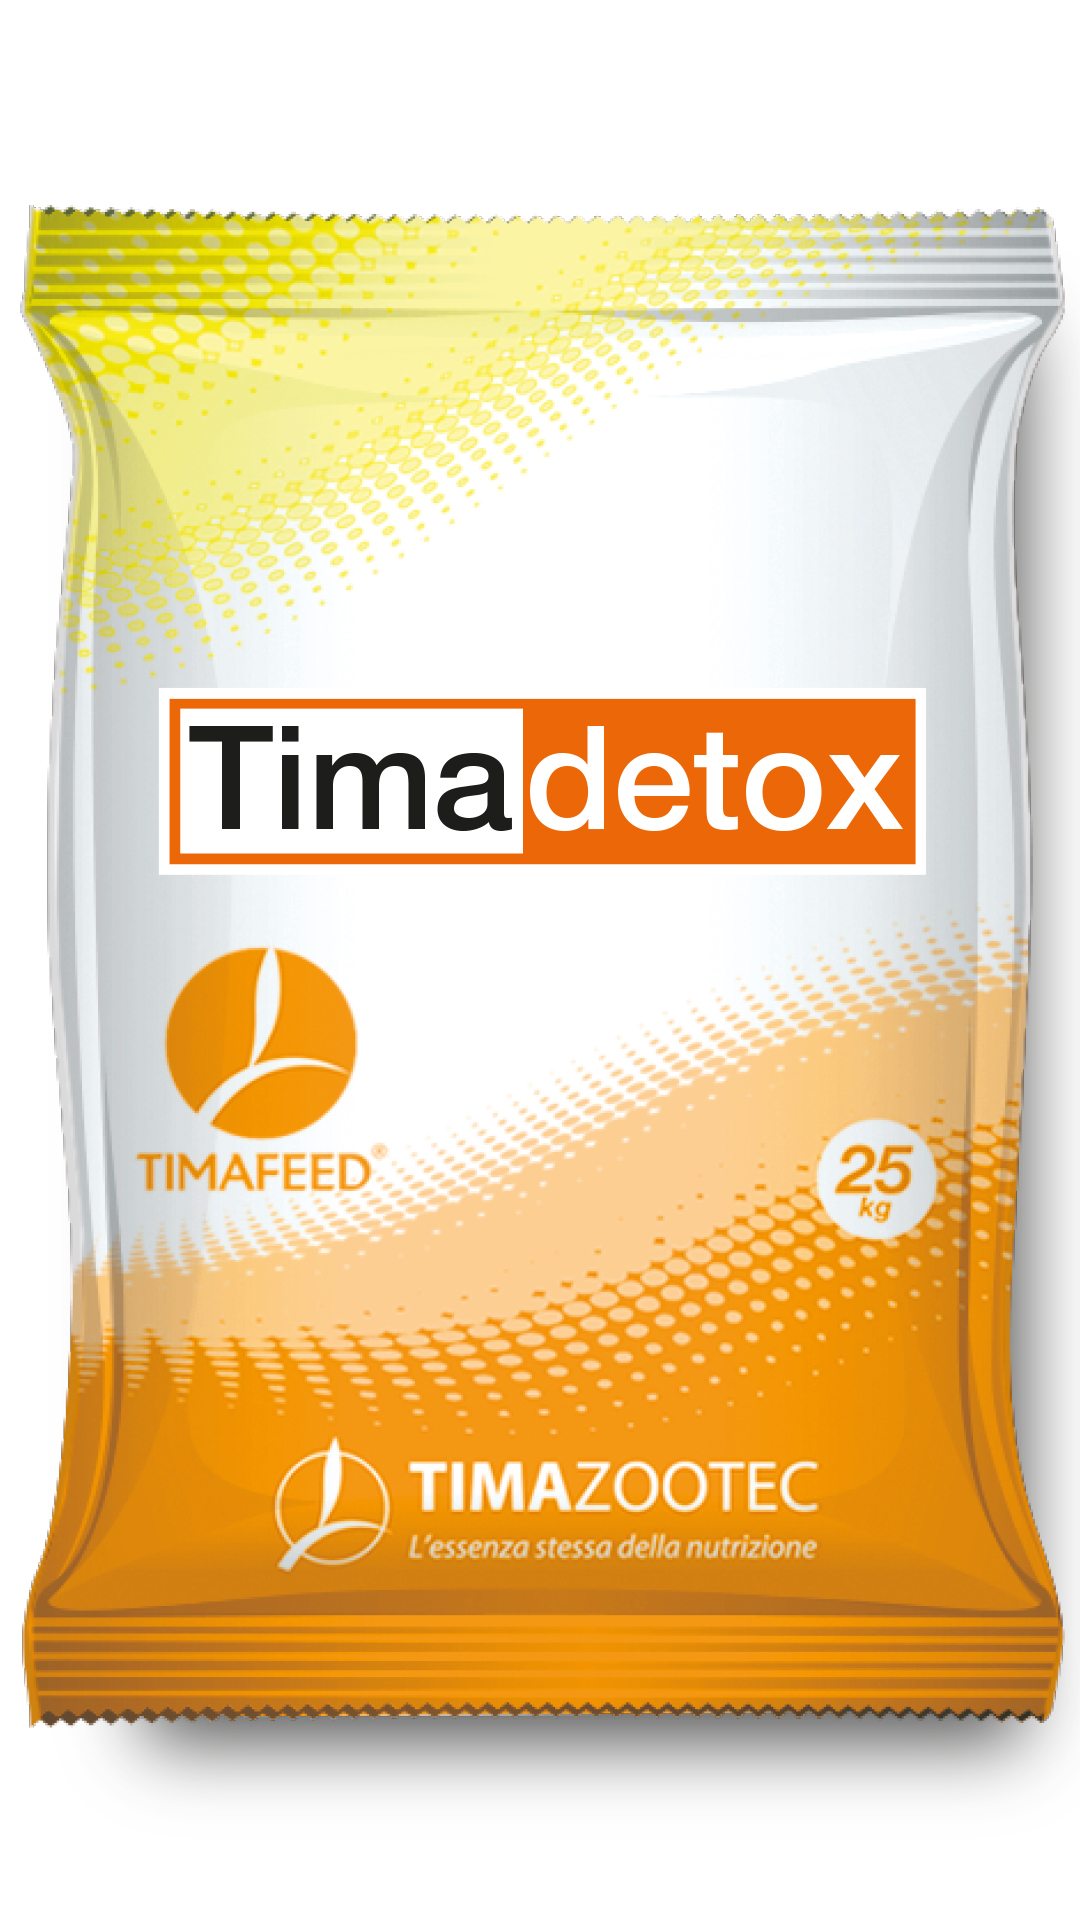 TIMADETOX